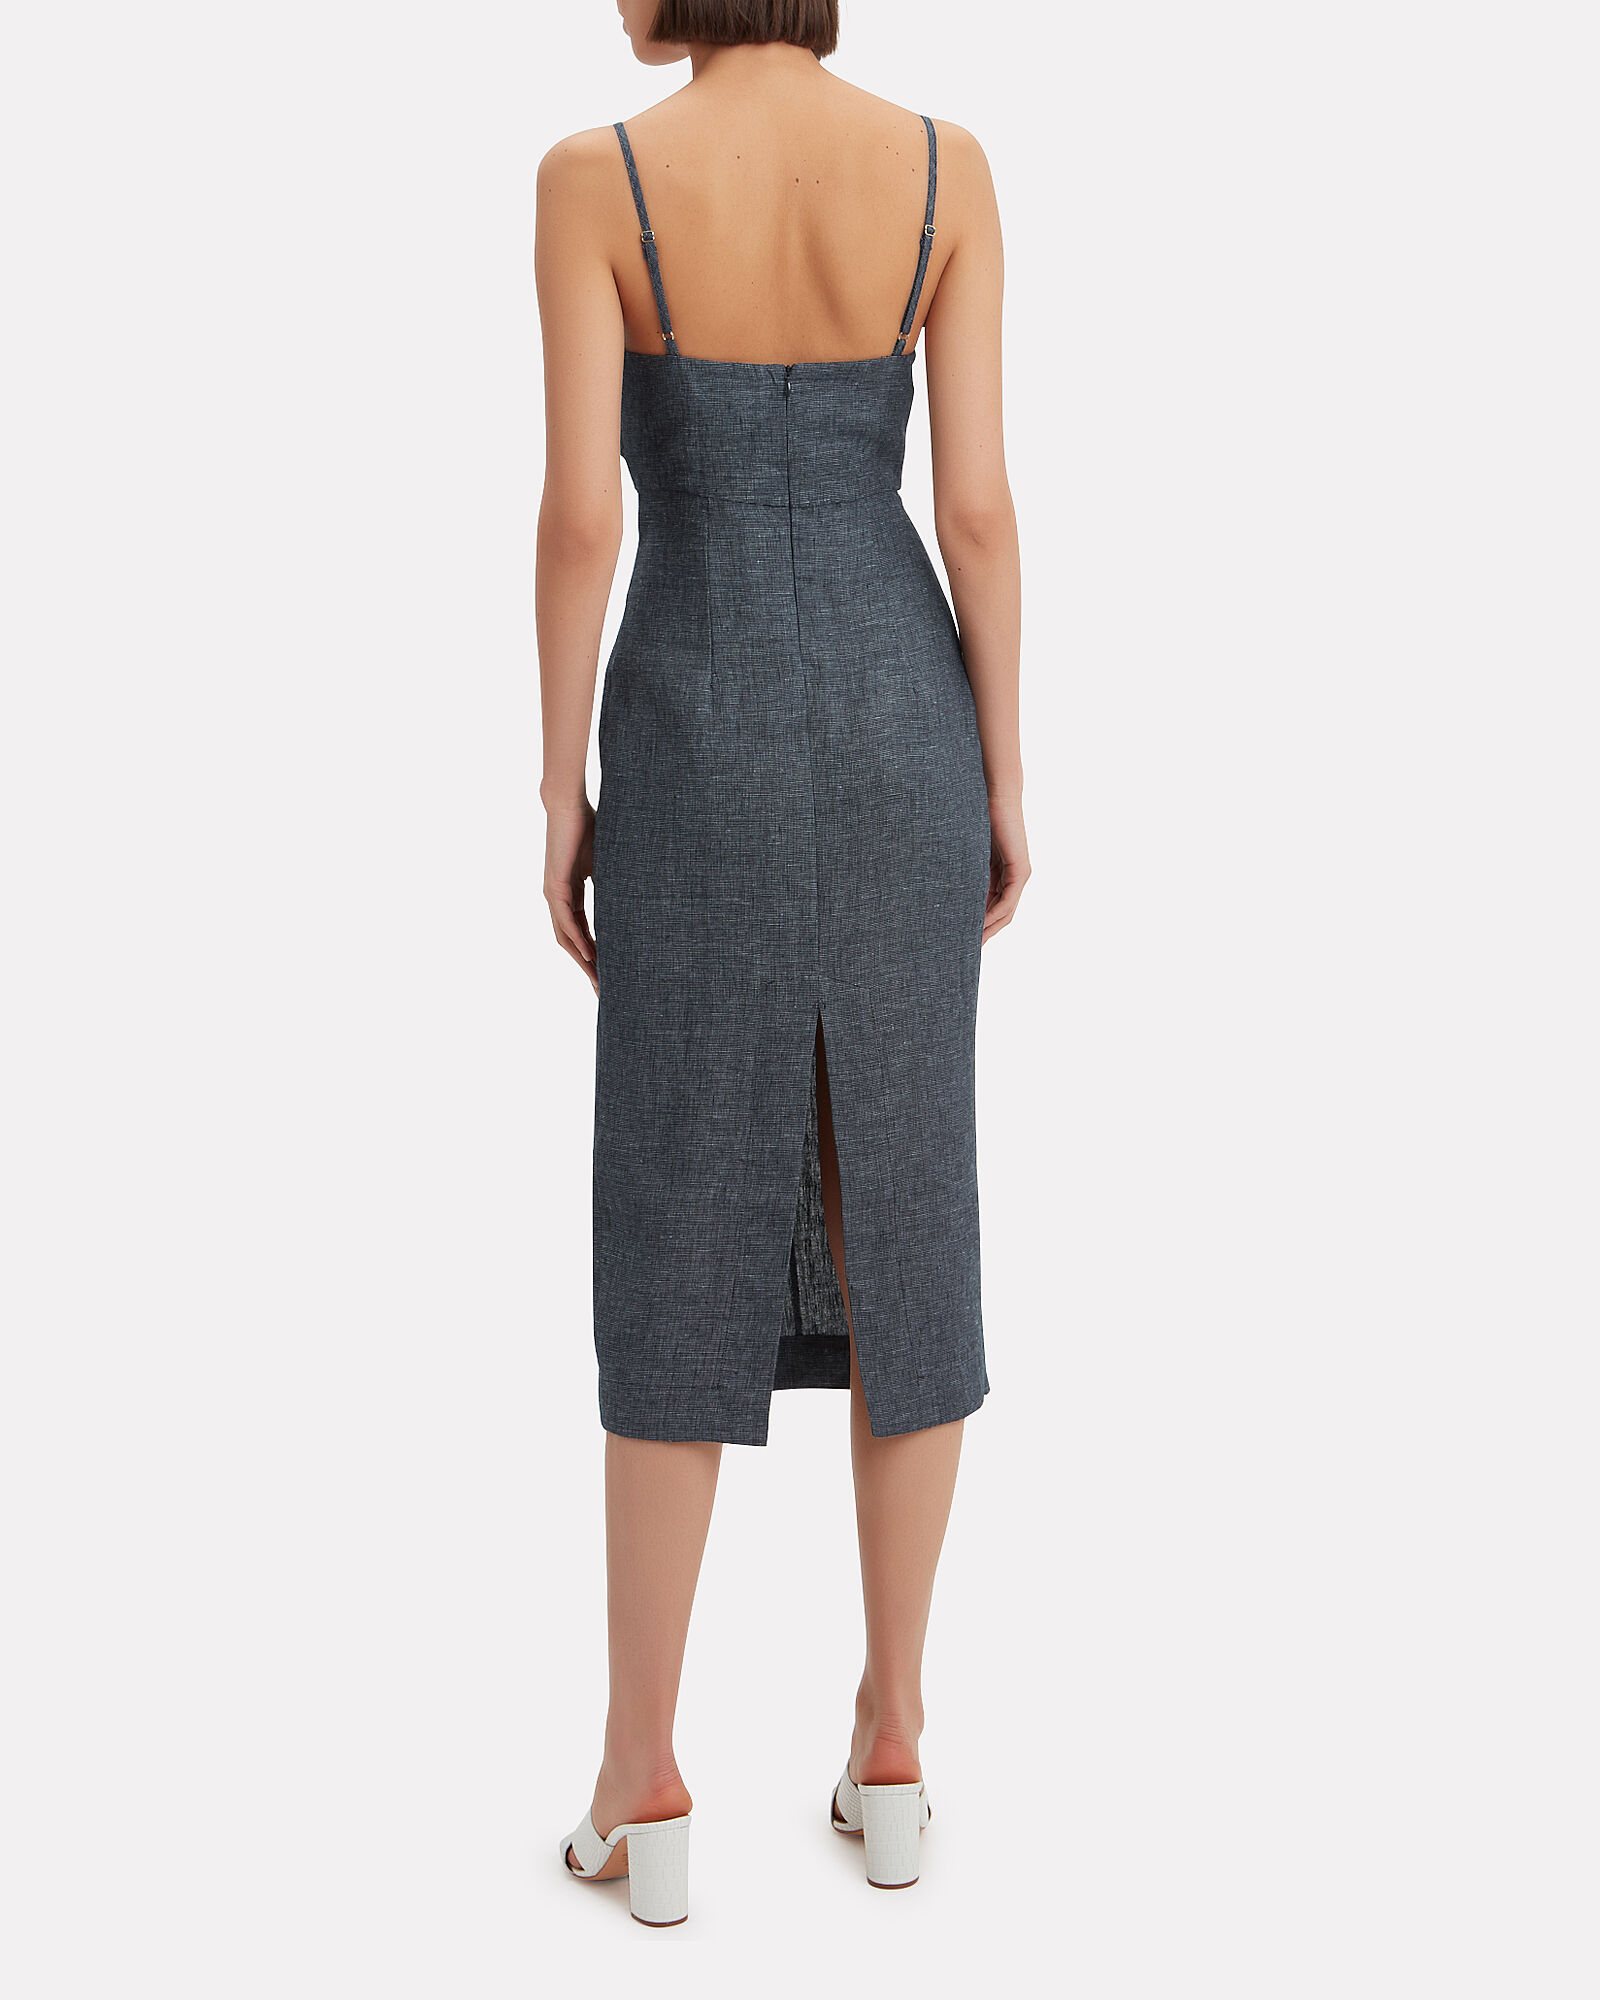 Cardozo Linen Dress, DENIM-DRK, hi-res